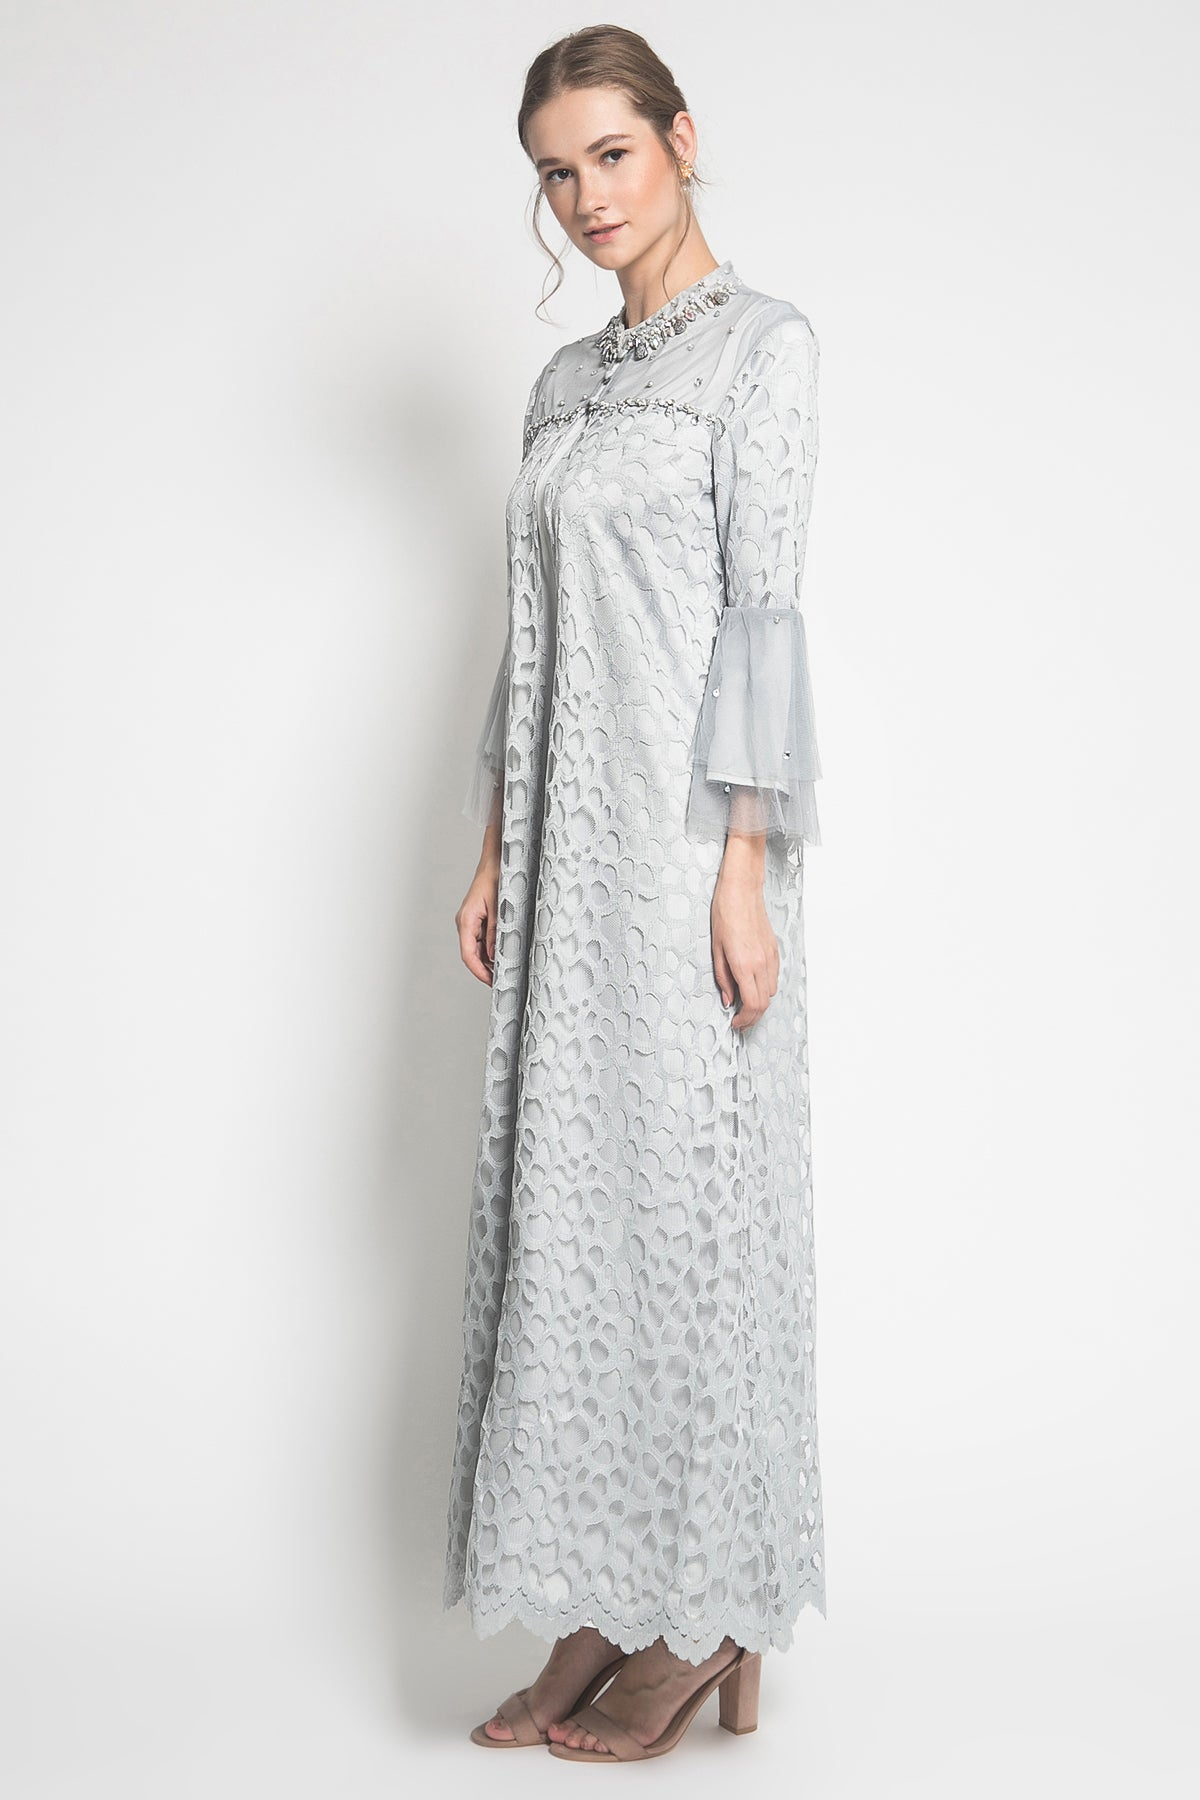 EIWA Maxima Long Dress in Greyish Blue